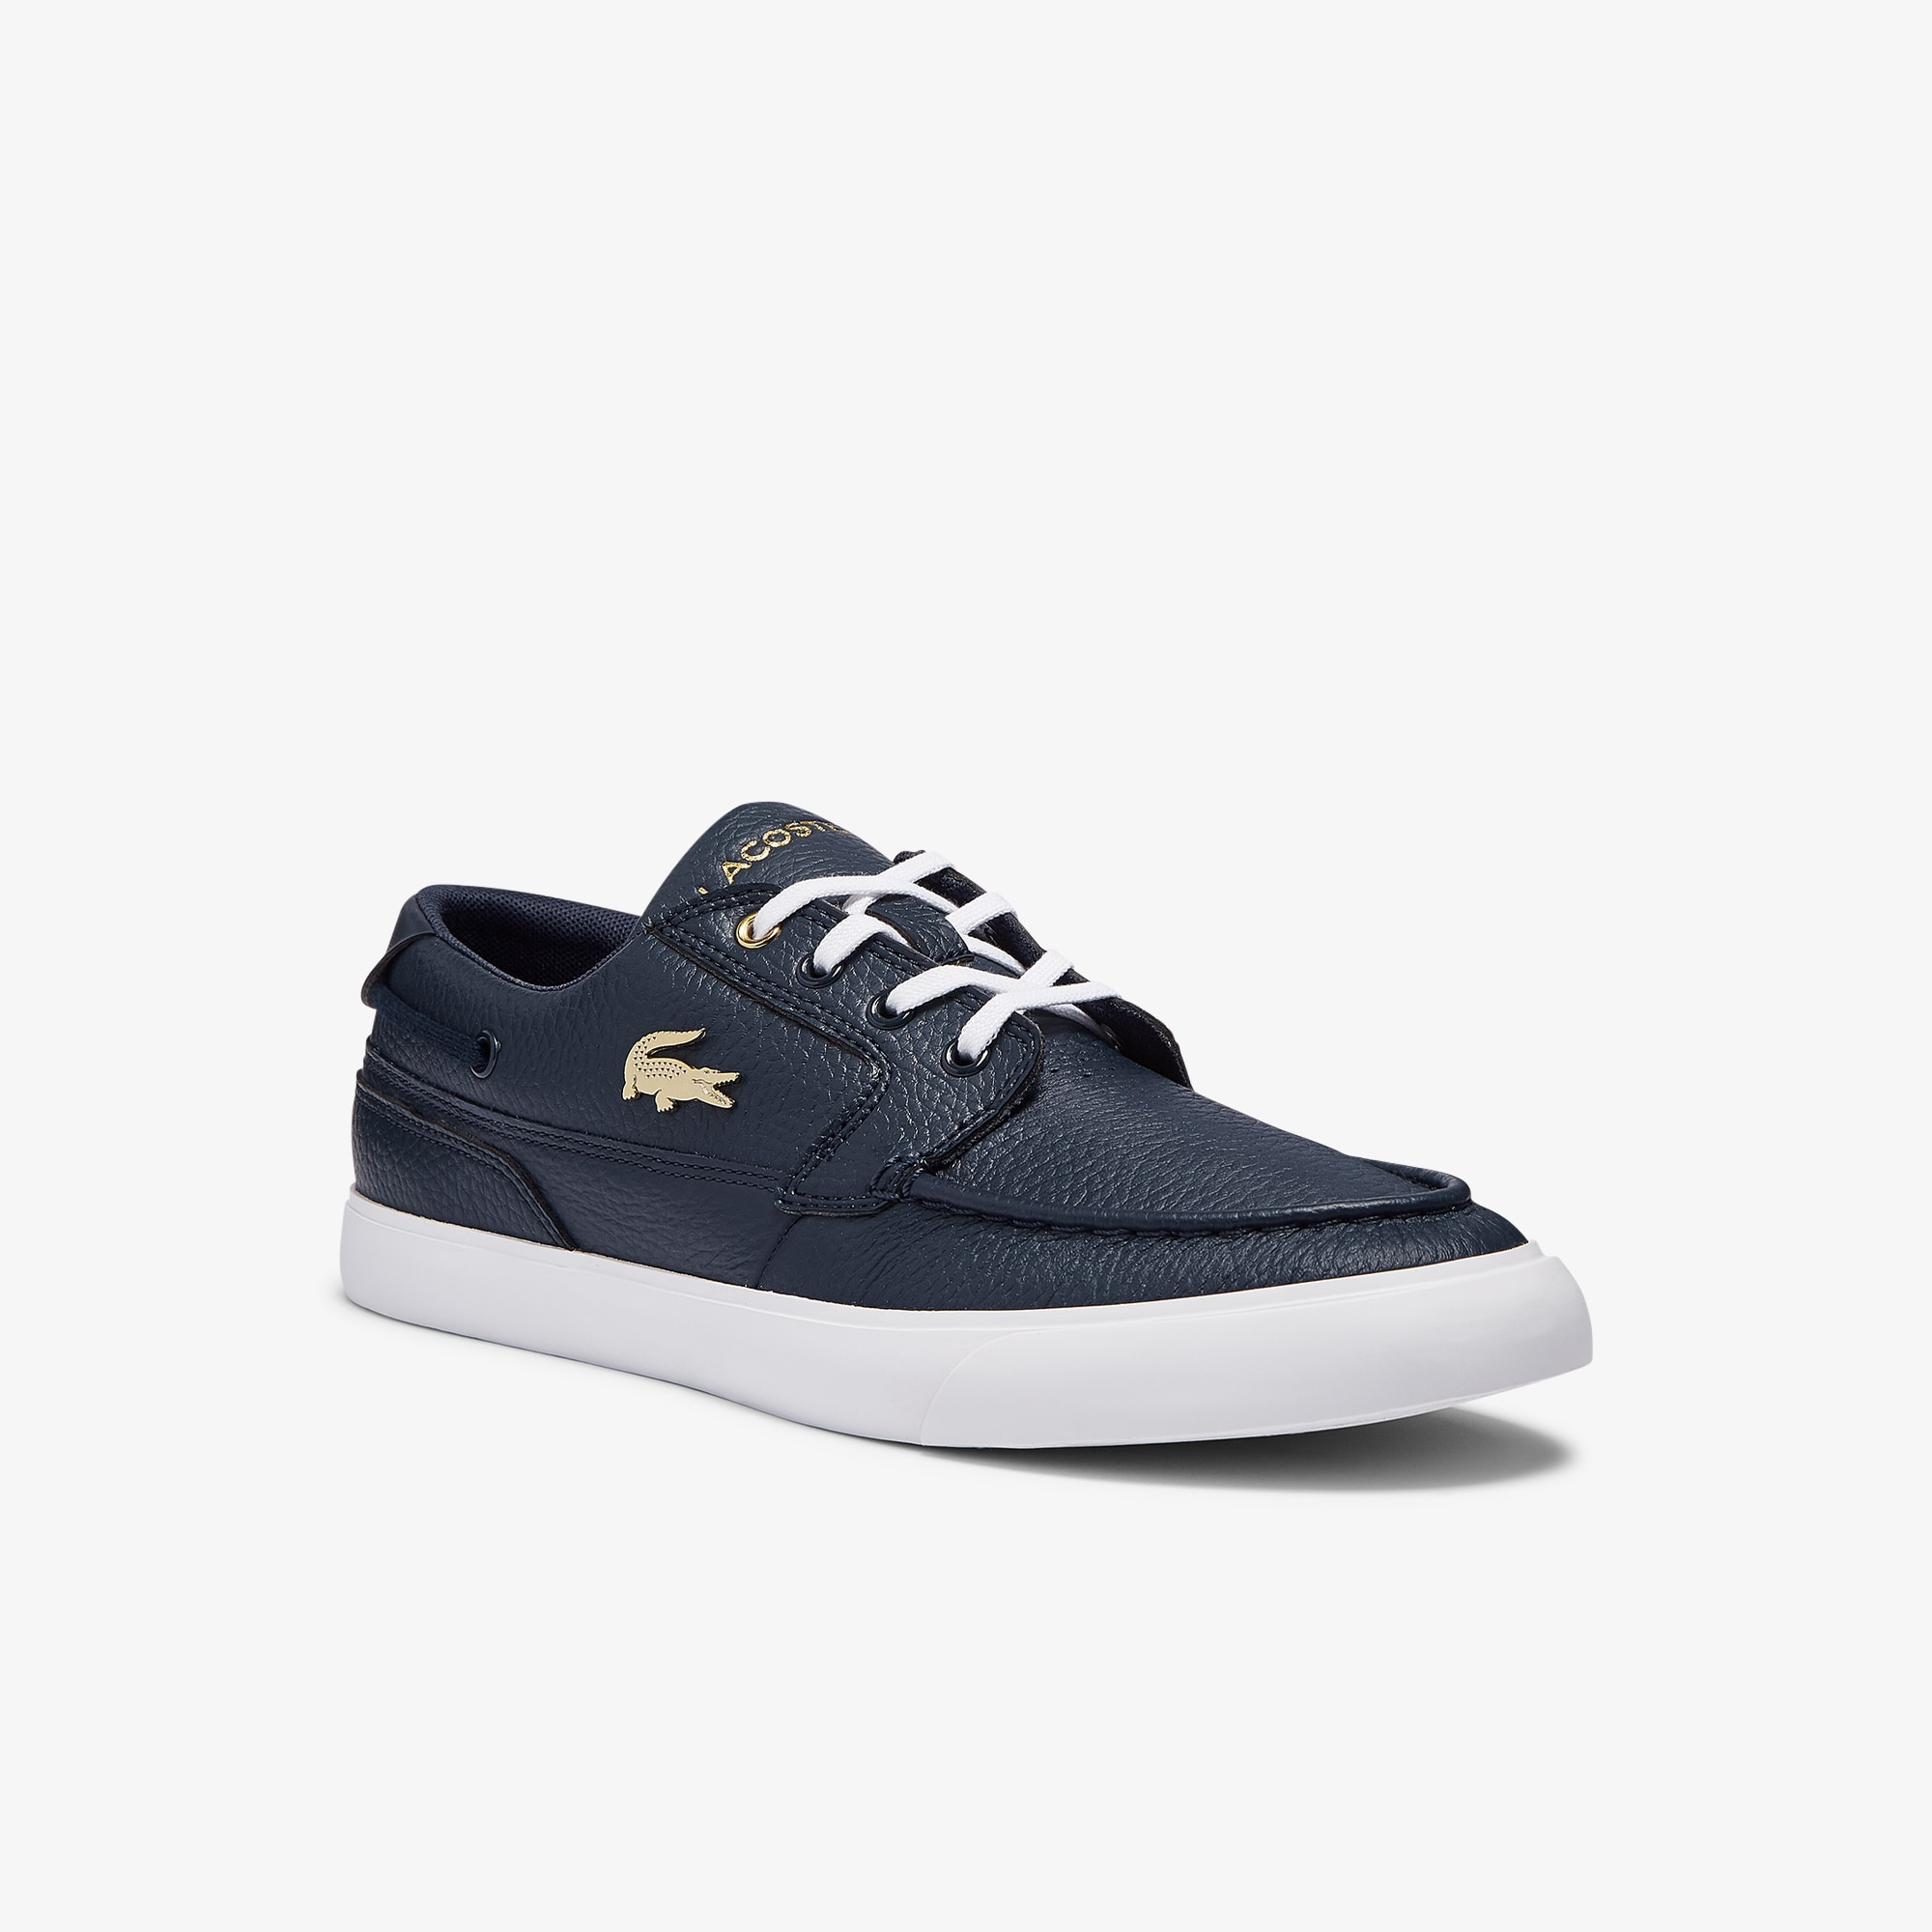 Lacoste Chaussures bateau Bayliss Luxe homme en cuir Taille 46.5 Marine/blanc